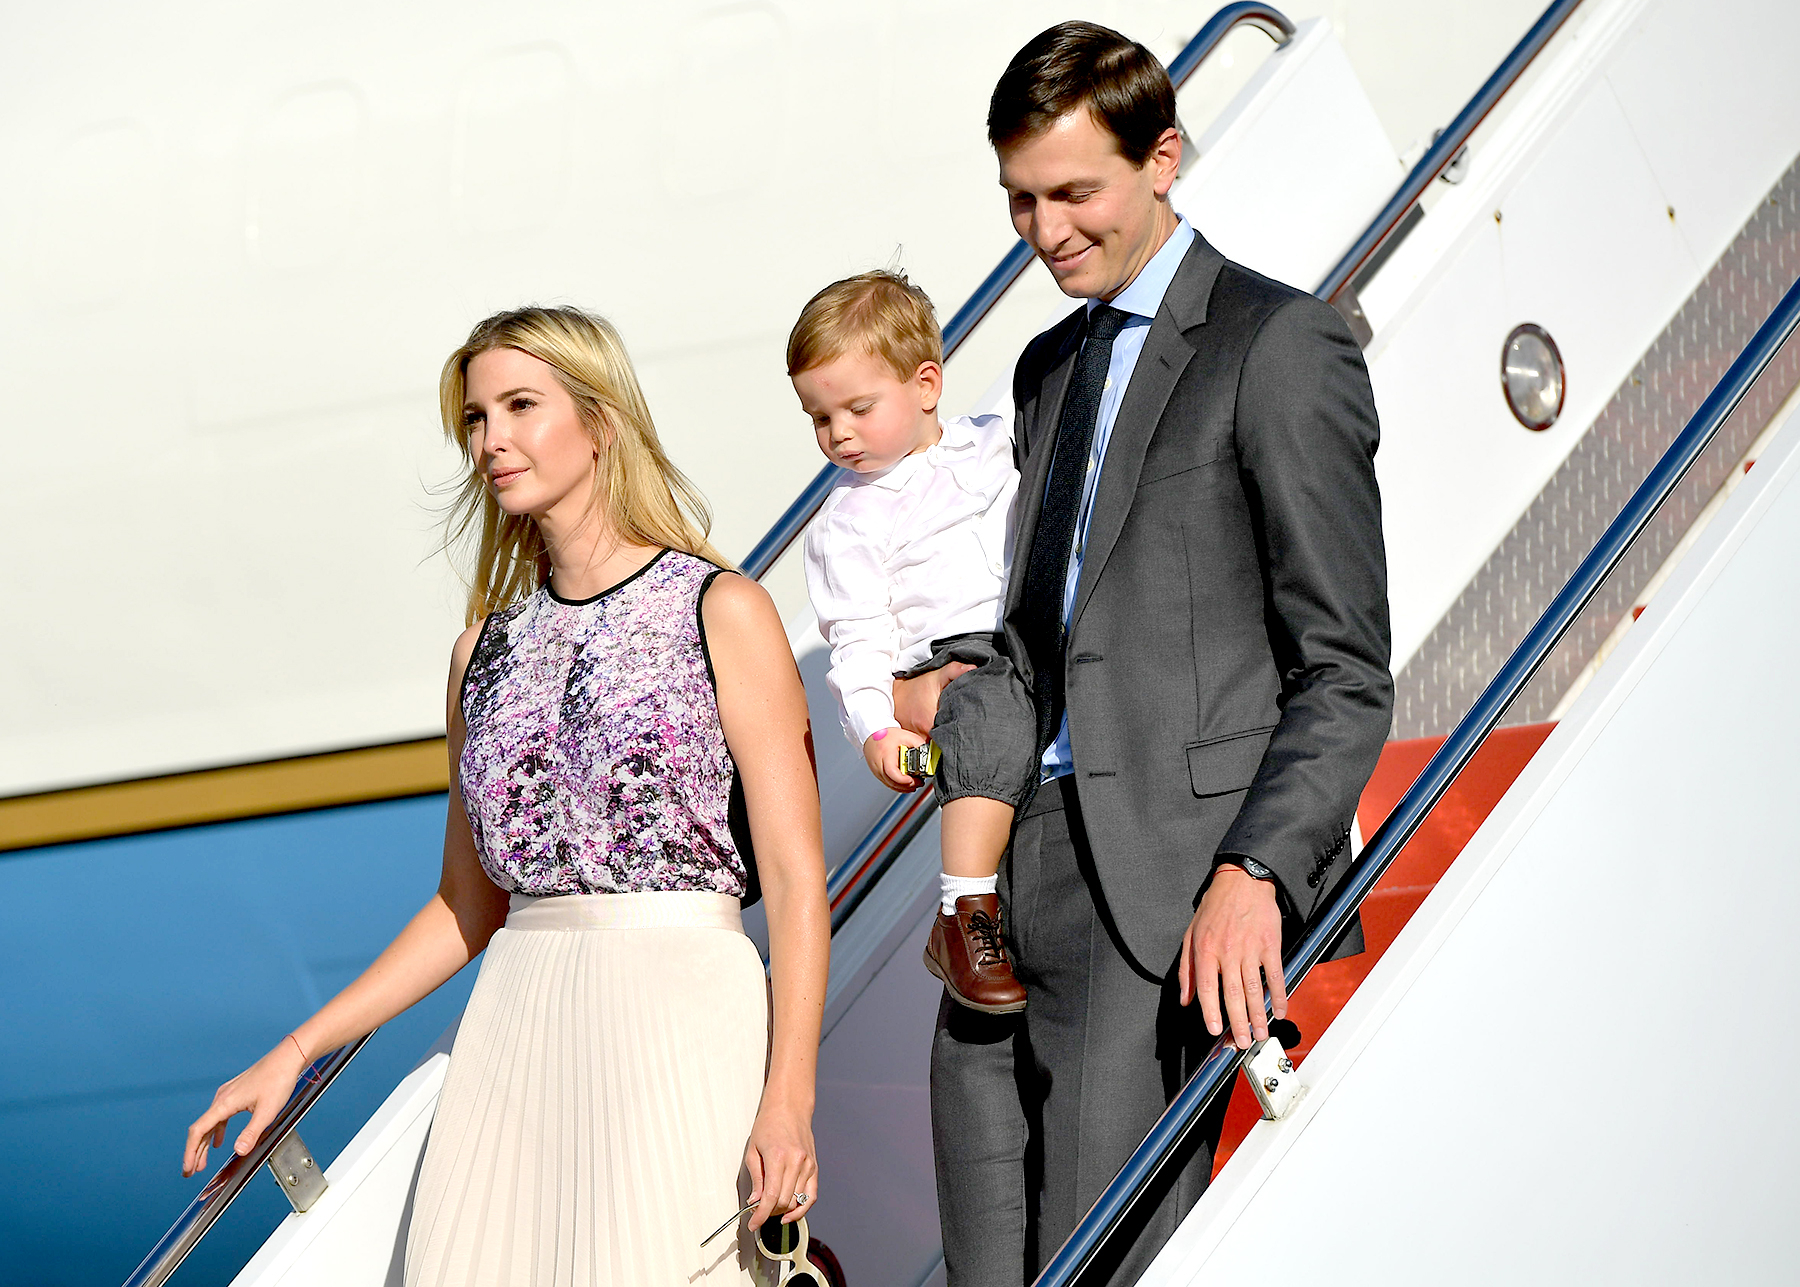 Ivanka Trump and husband Jared Kushner step off Air Force One with their child on September 15, 2017 in Morristown, New Jersey. US President Donal Trump, advisors and family are spending the weekend at Trump's Bedminster, New Jersey golf club.